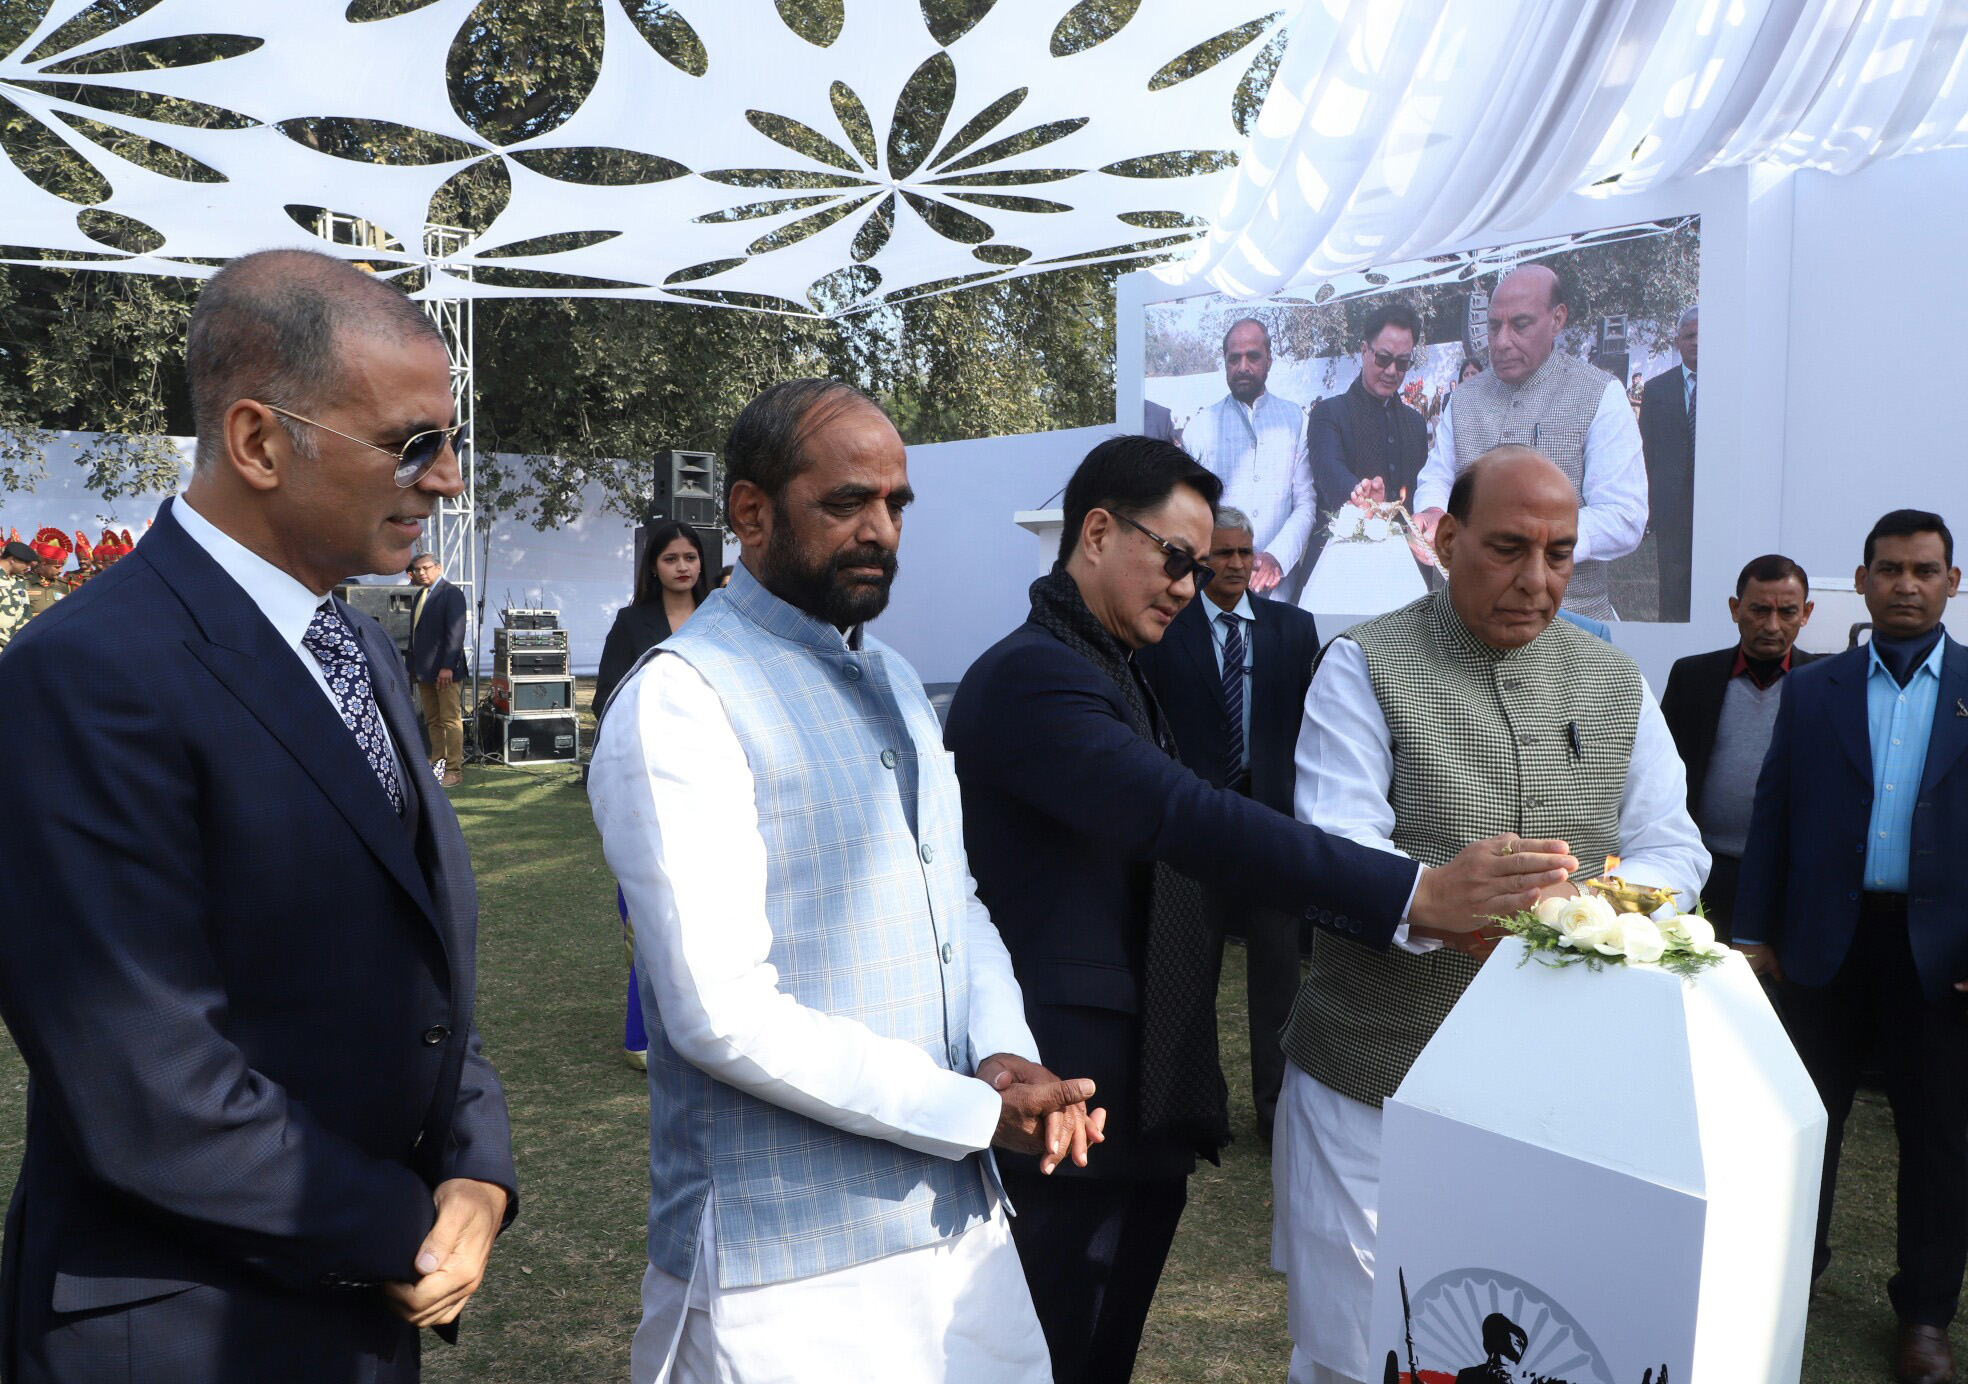 The Ministers of State for Home Affairs, Shri Hansraj Gangaram Ahir and Shri Kiren Rijiju and well-known film actor Akhsay Kumar are also seen.